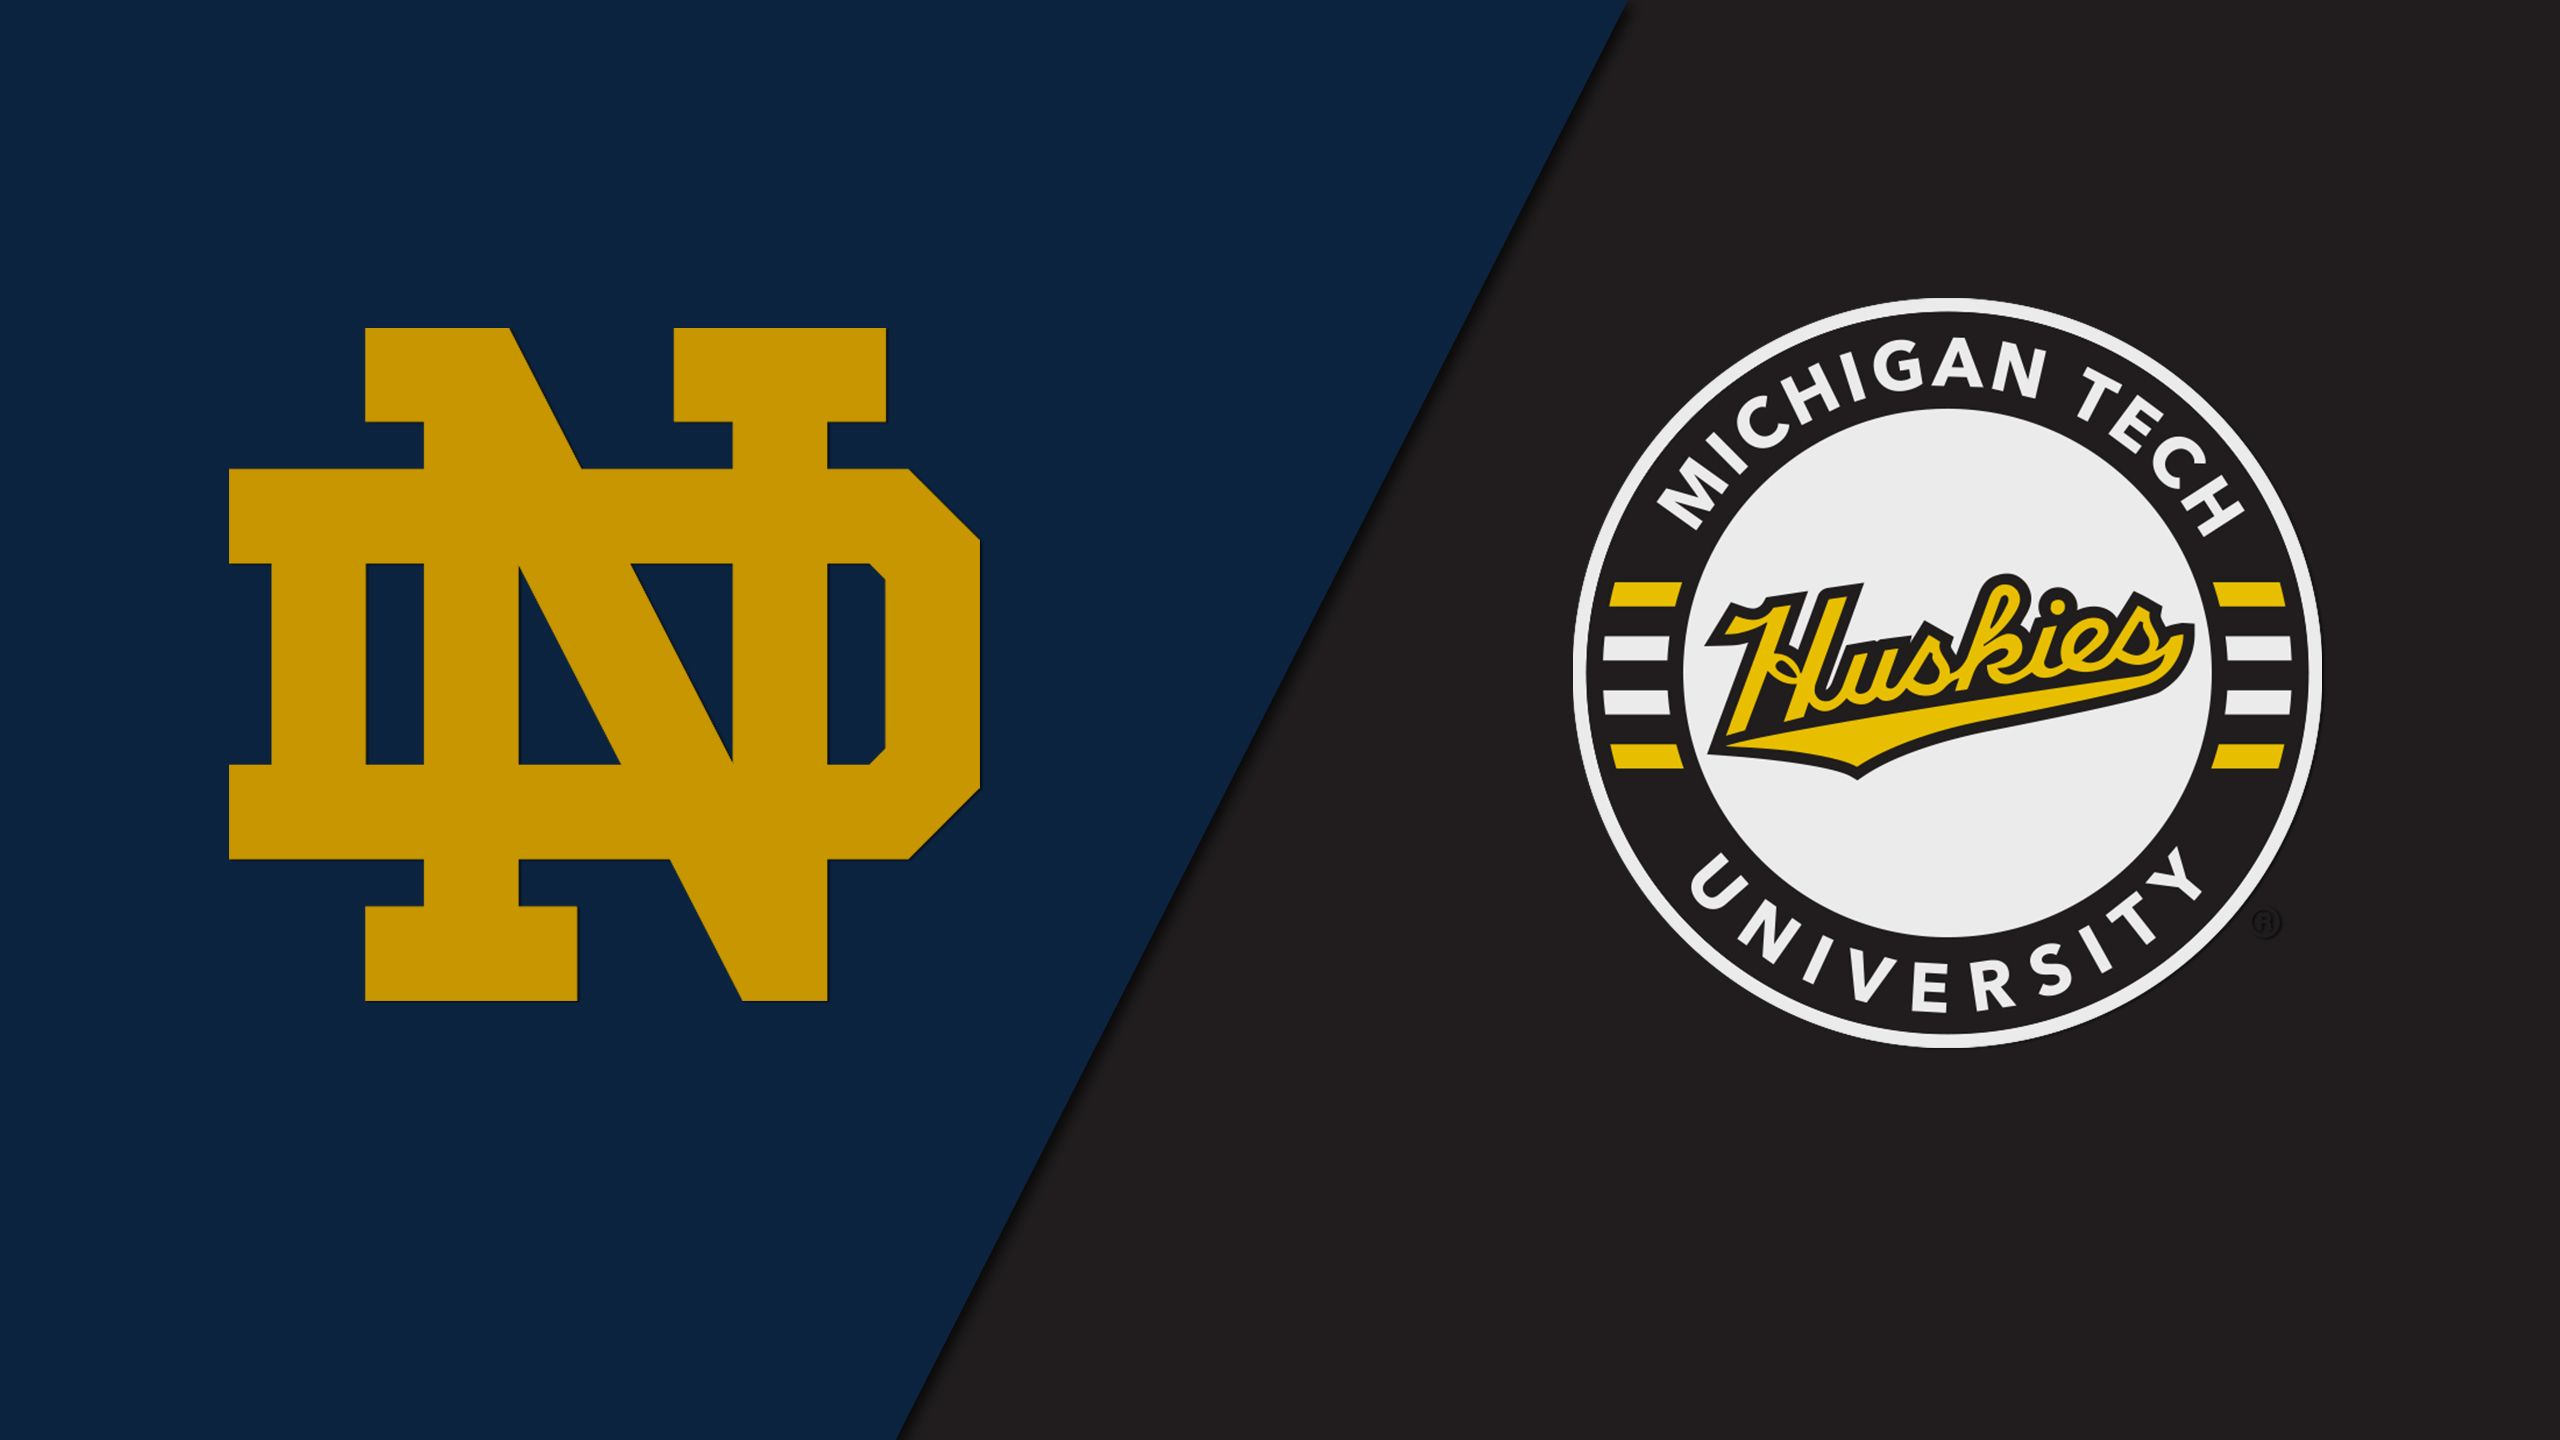 #1 Notre Dame vs. #4 Michigan Tech (East Regional Semifinal #1) (NCAA Men's Hockey Championship)